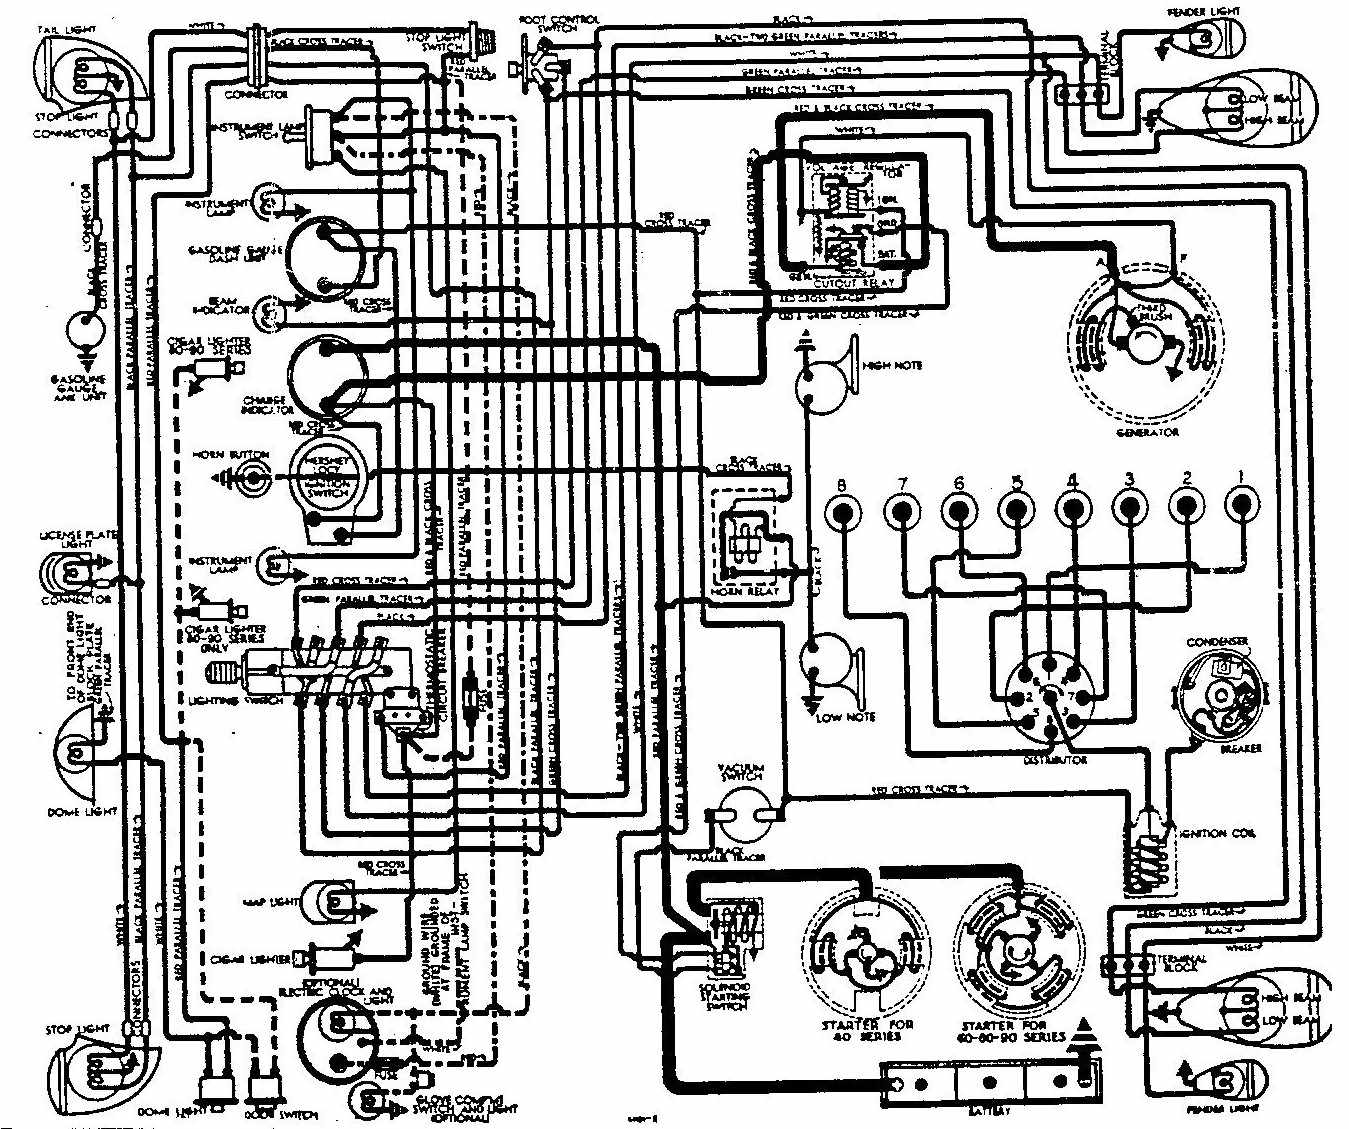 1954 Chrysler Wiring Harness Electrical Diagrams Trailer Diagram 2003 Crysler Town And Country Gm